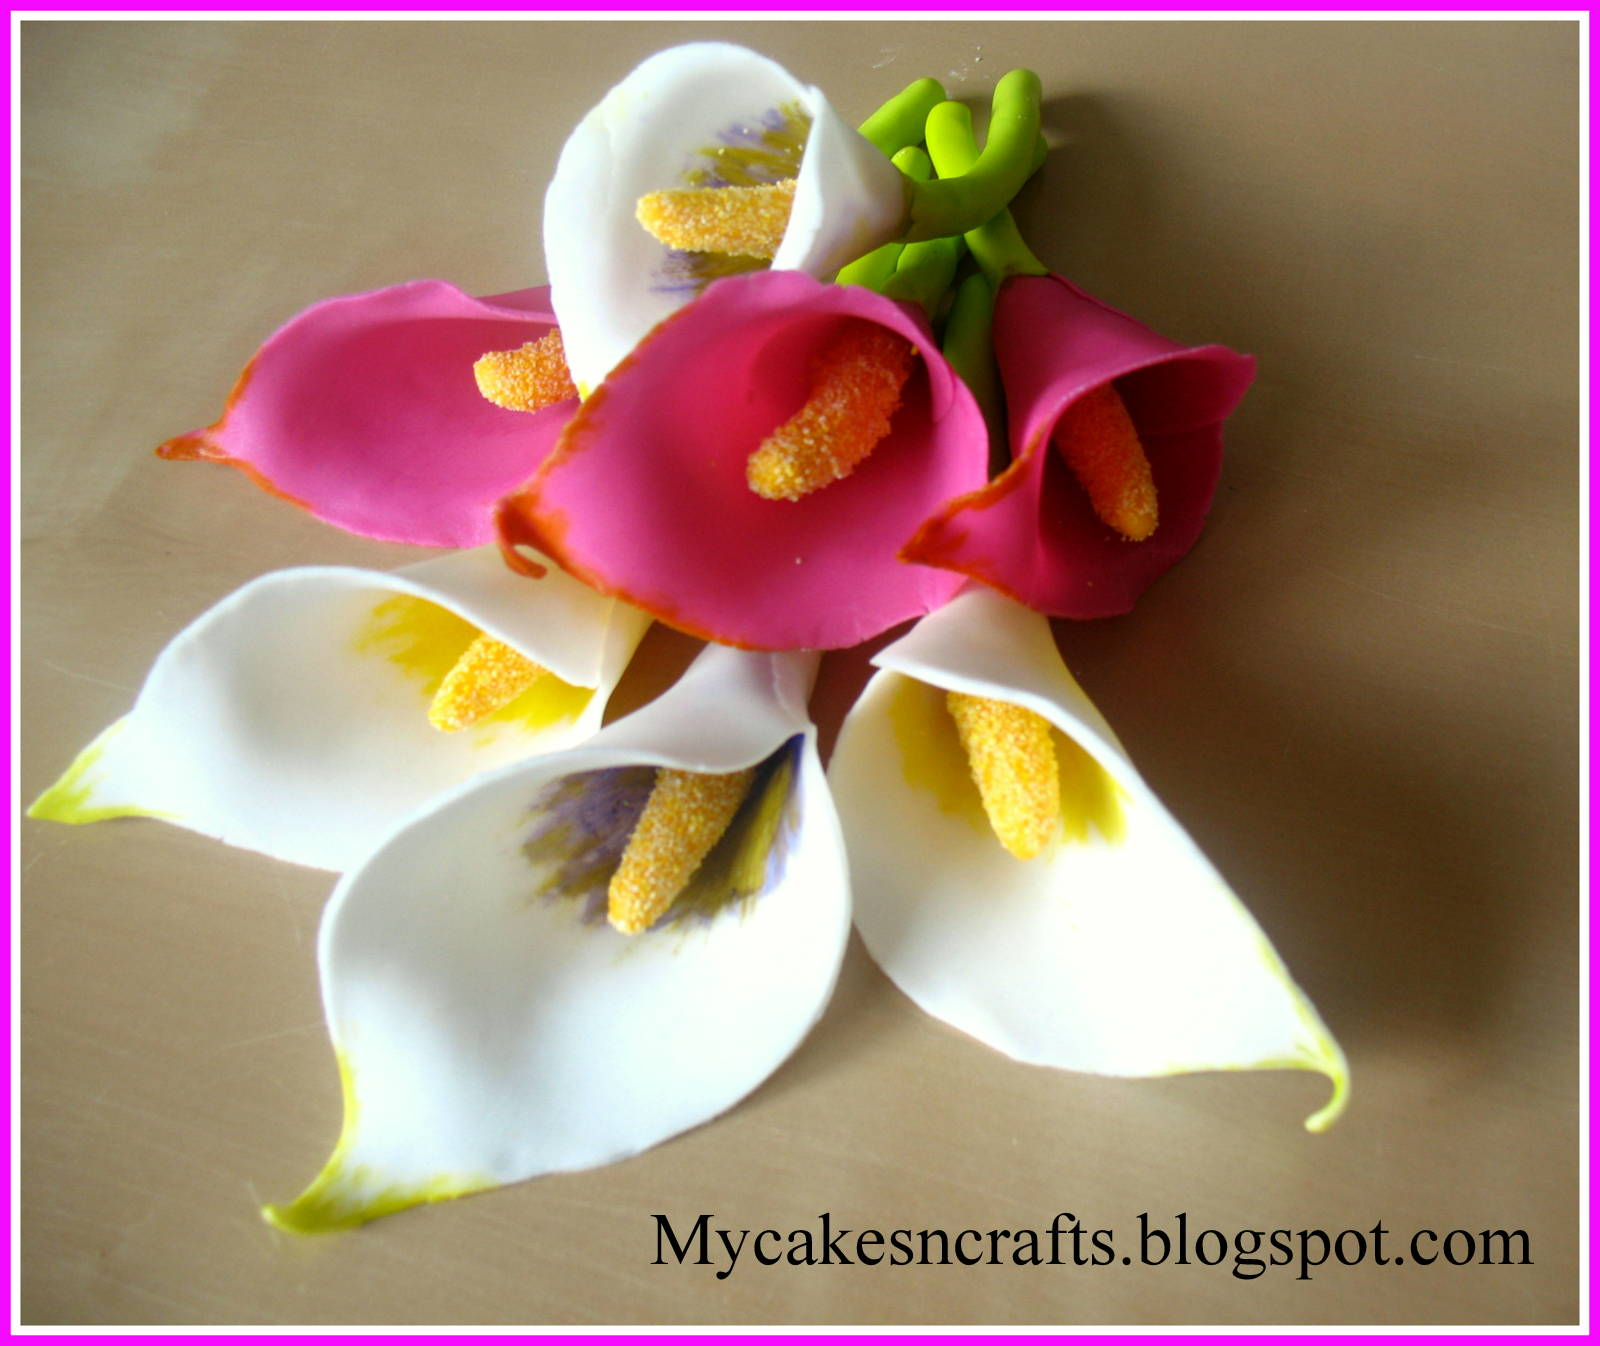 My Cakes n Crafts: How to make Fondant Gum Paste Calla Lily